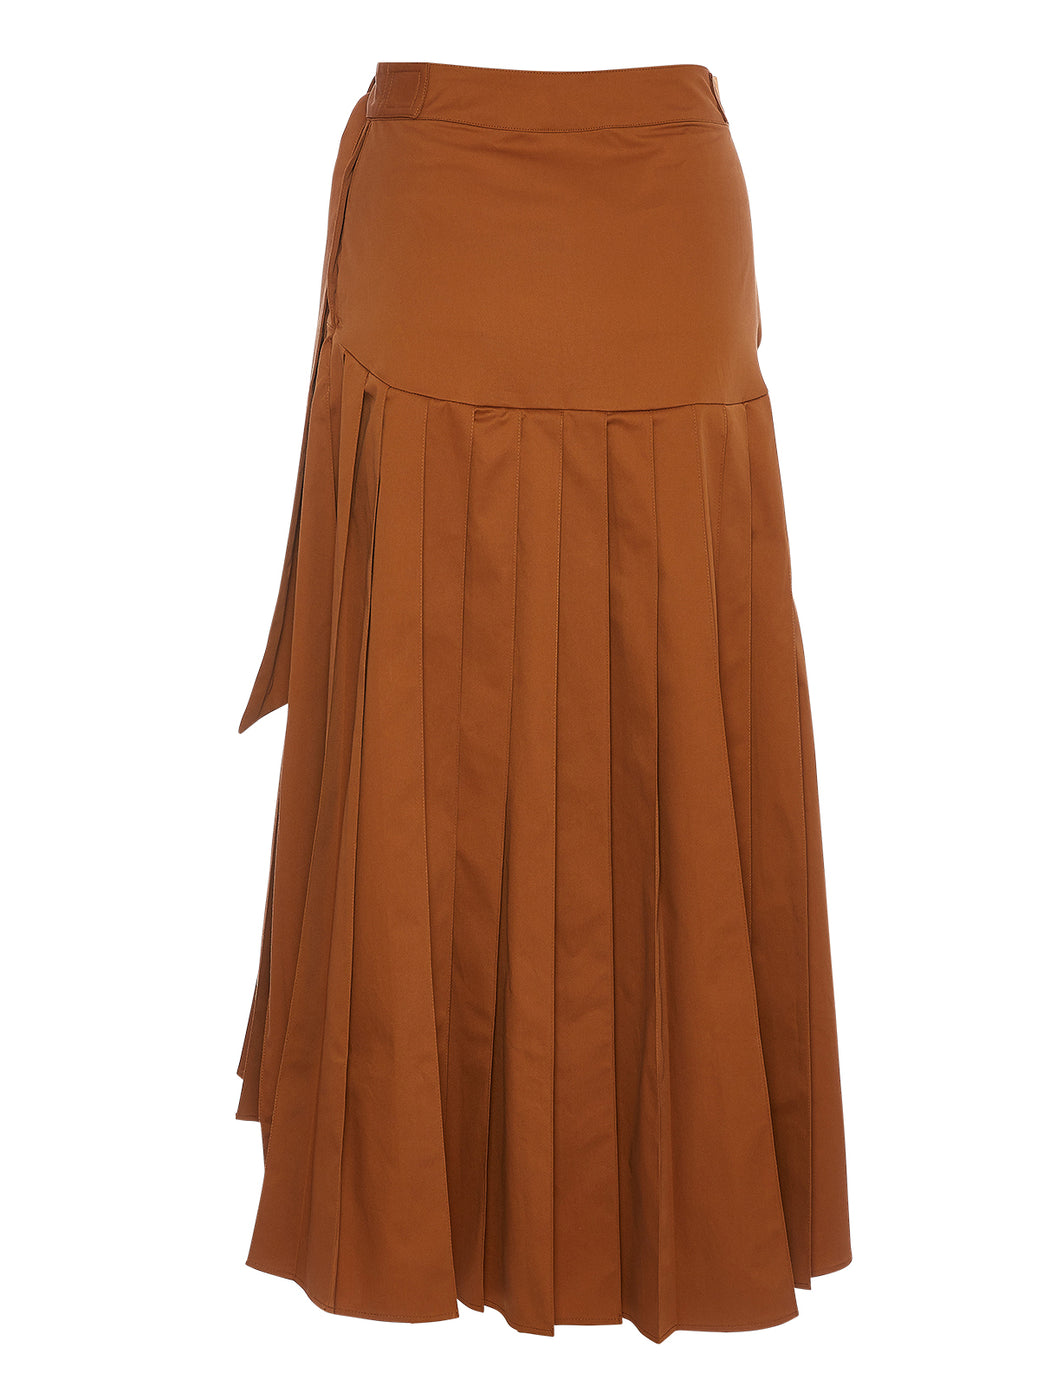 Belted Pleated A-Line Skirt